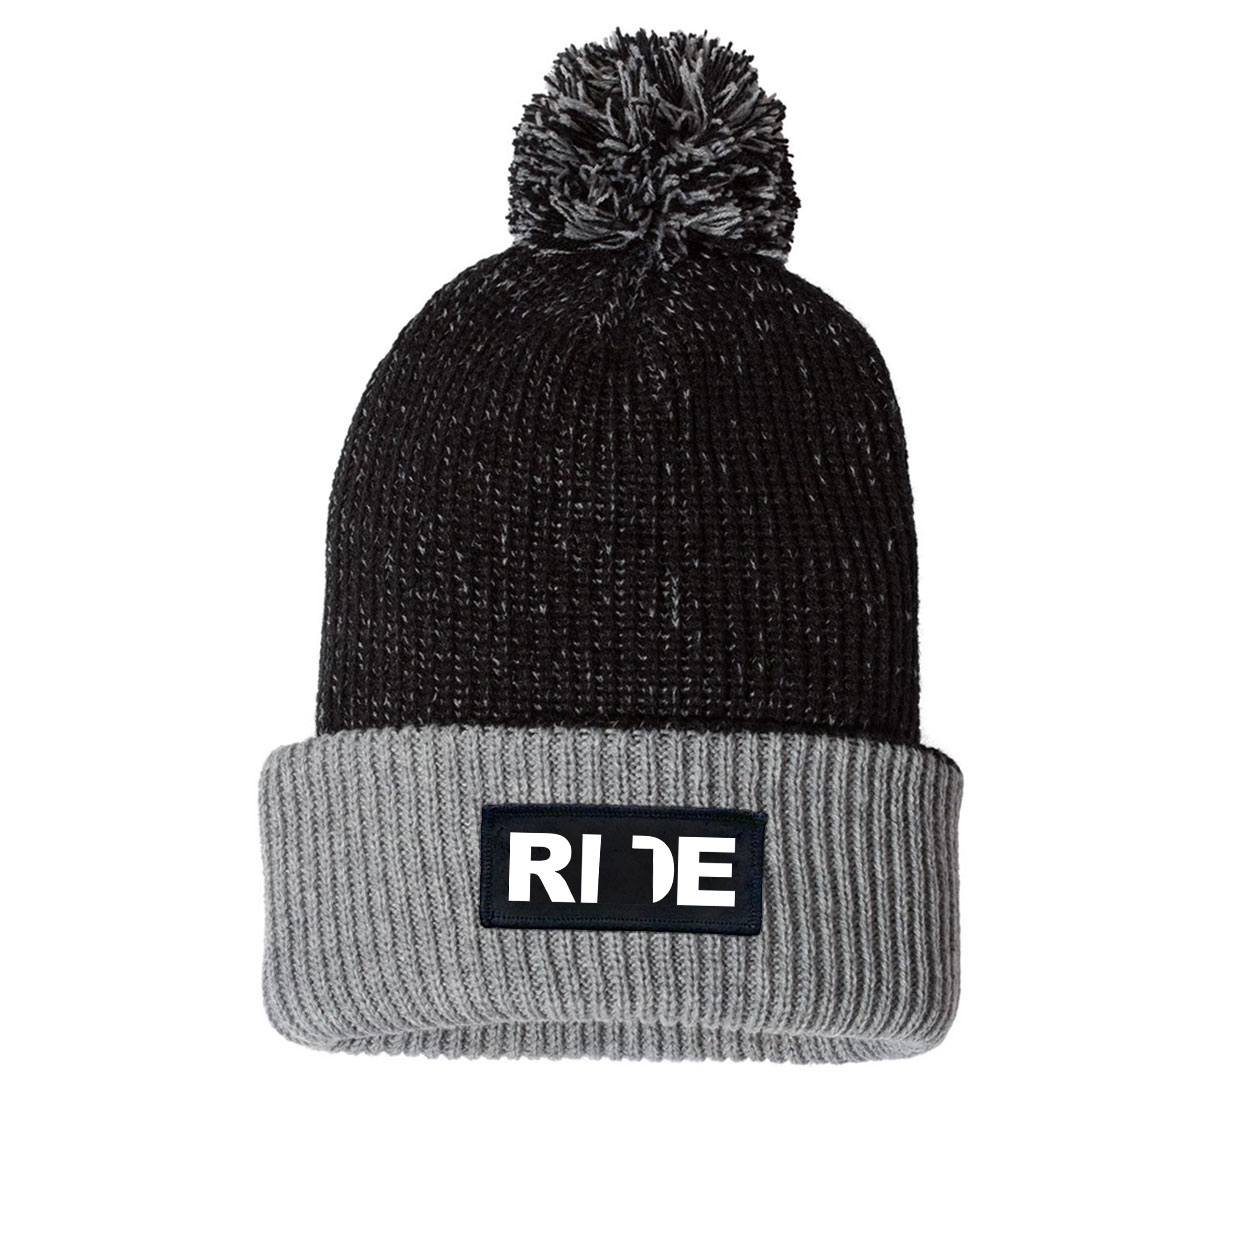 Ride Utah Night Out Woven Patch Roll Up Pom Knit Beanie Black/Gray (White Logo)